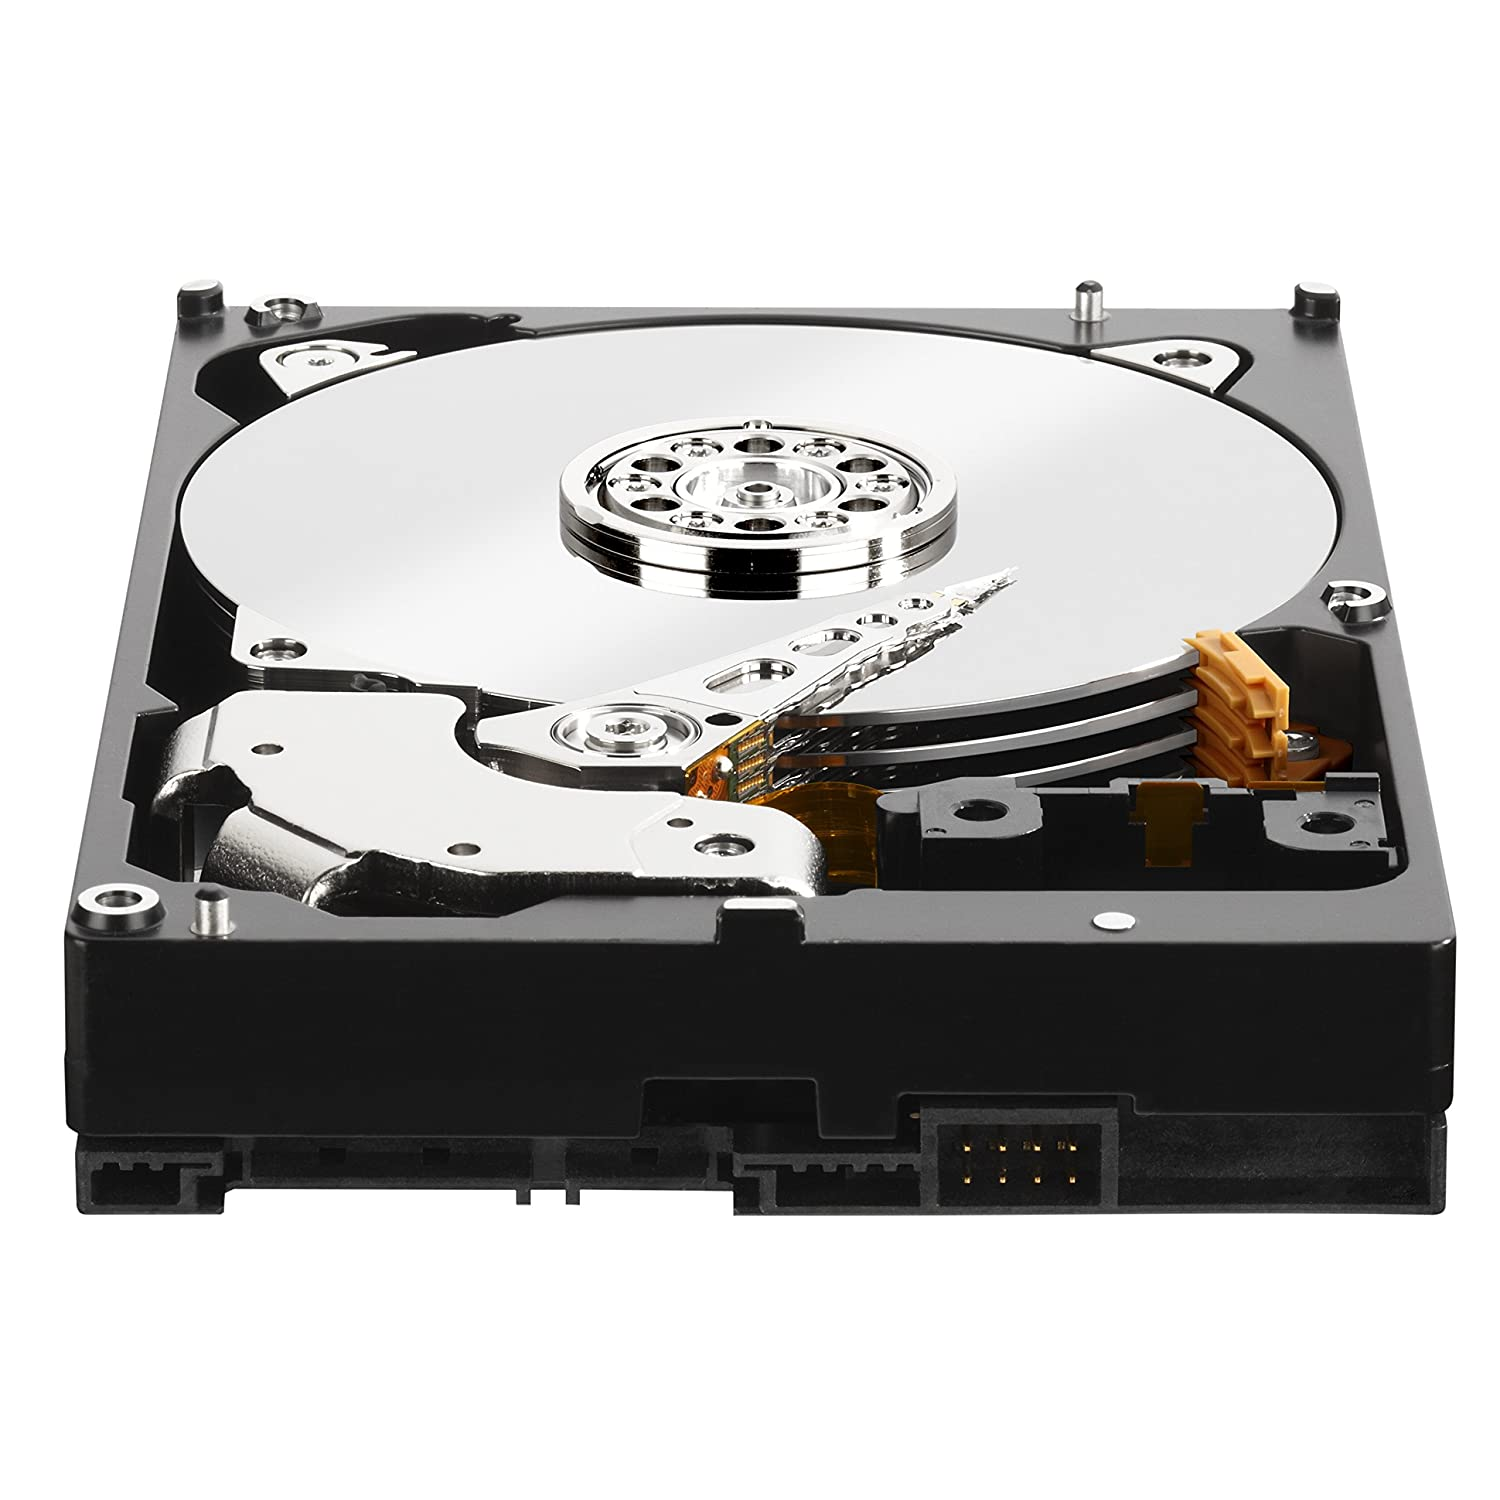 Top 3 Hard Drives Hdd Ssd With 5 Year Warranty For January 2019